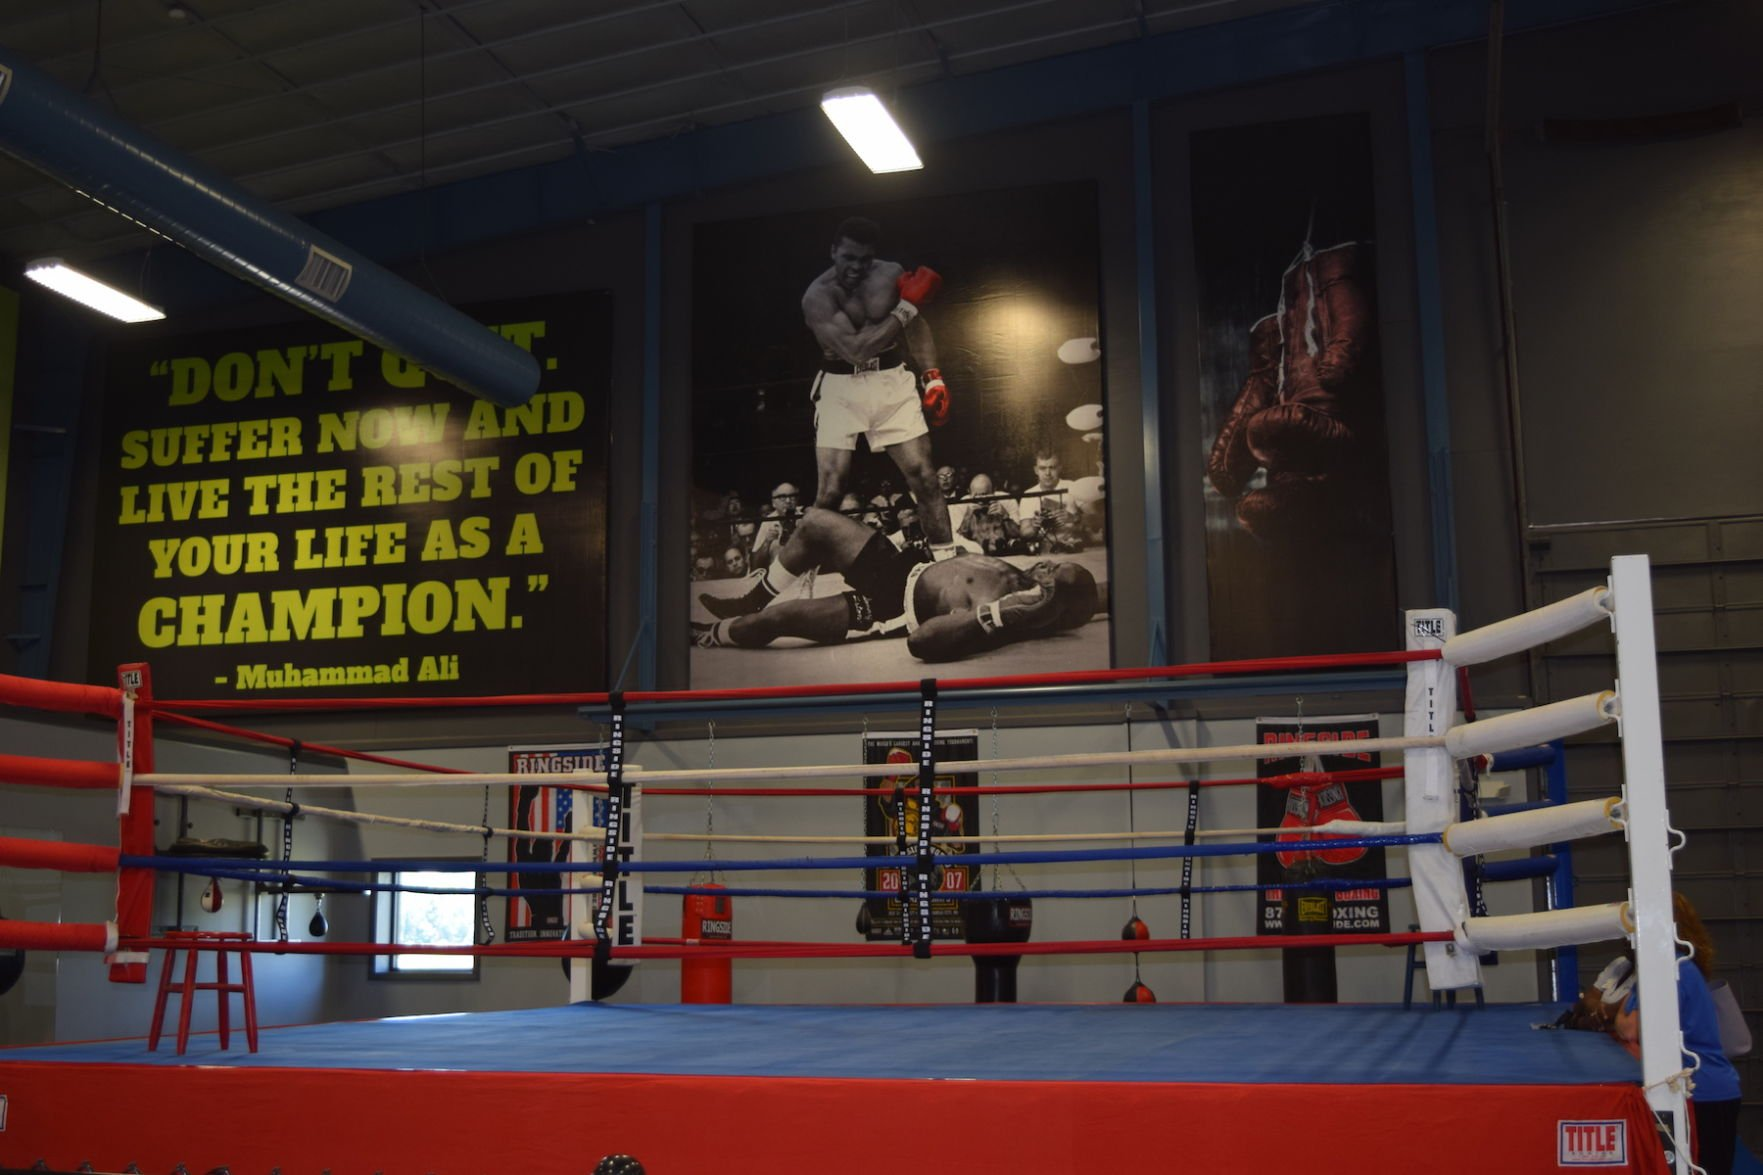 The New Boxing Ring U2014 Donated From Storage Of The Junction City Boys And  Girls Club U2014 Is Just One Element Of The New Athletic Training Center, ...